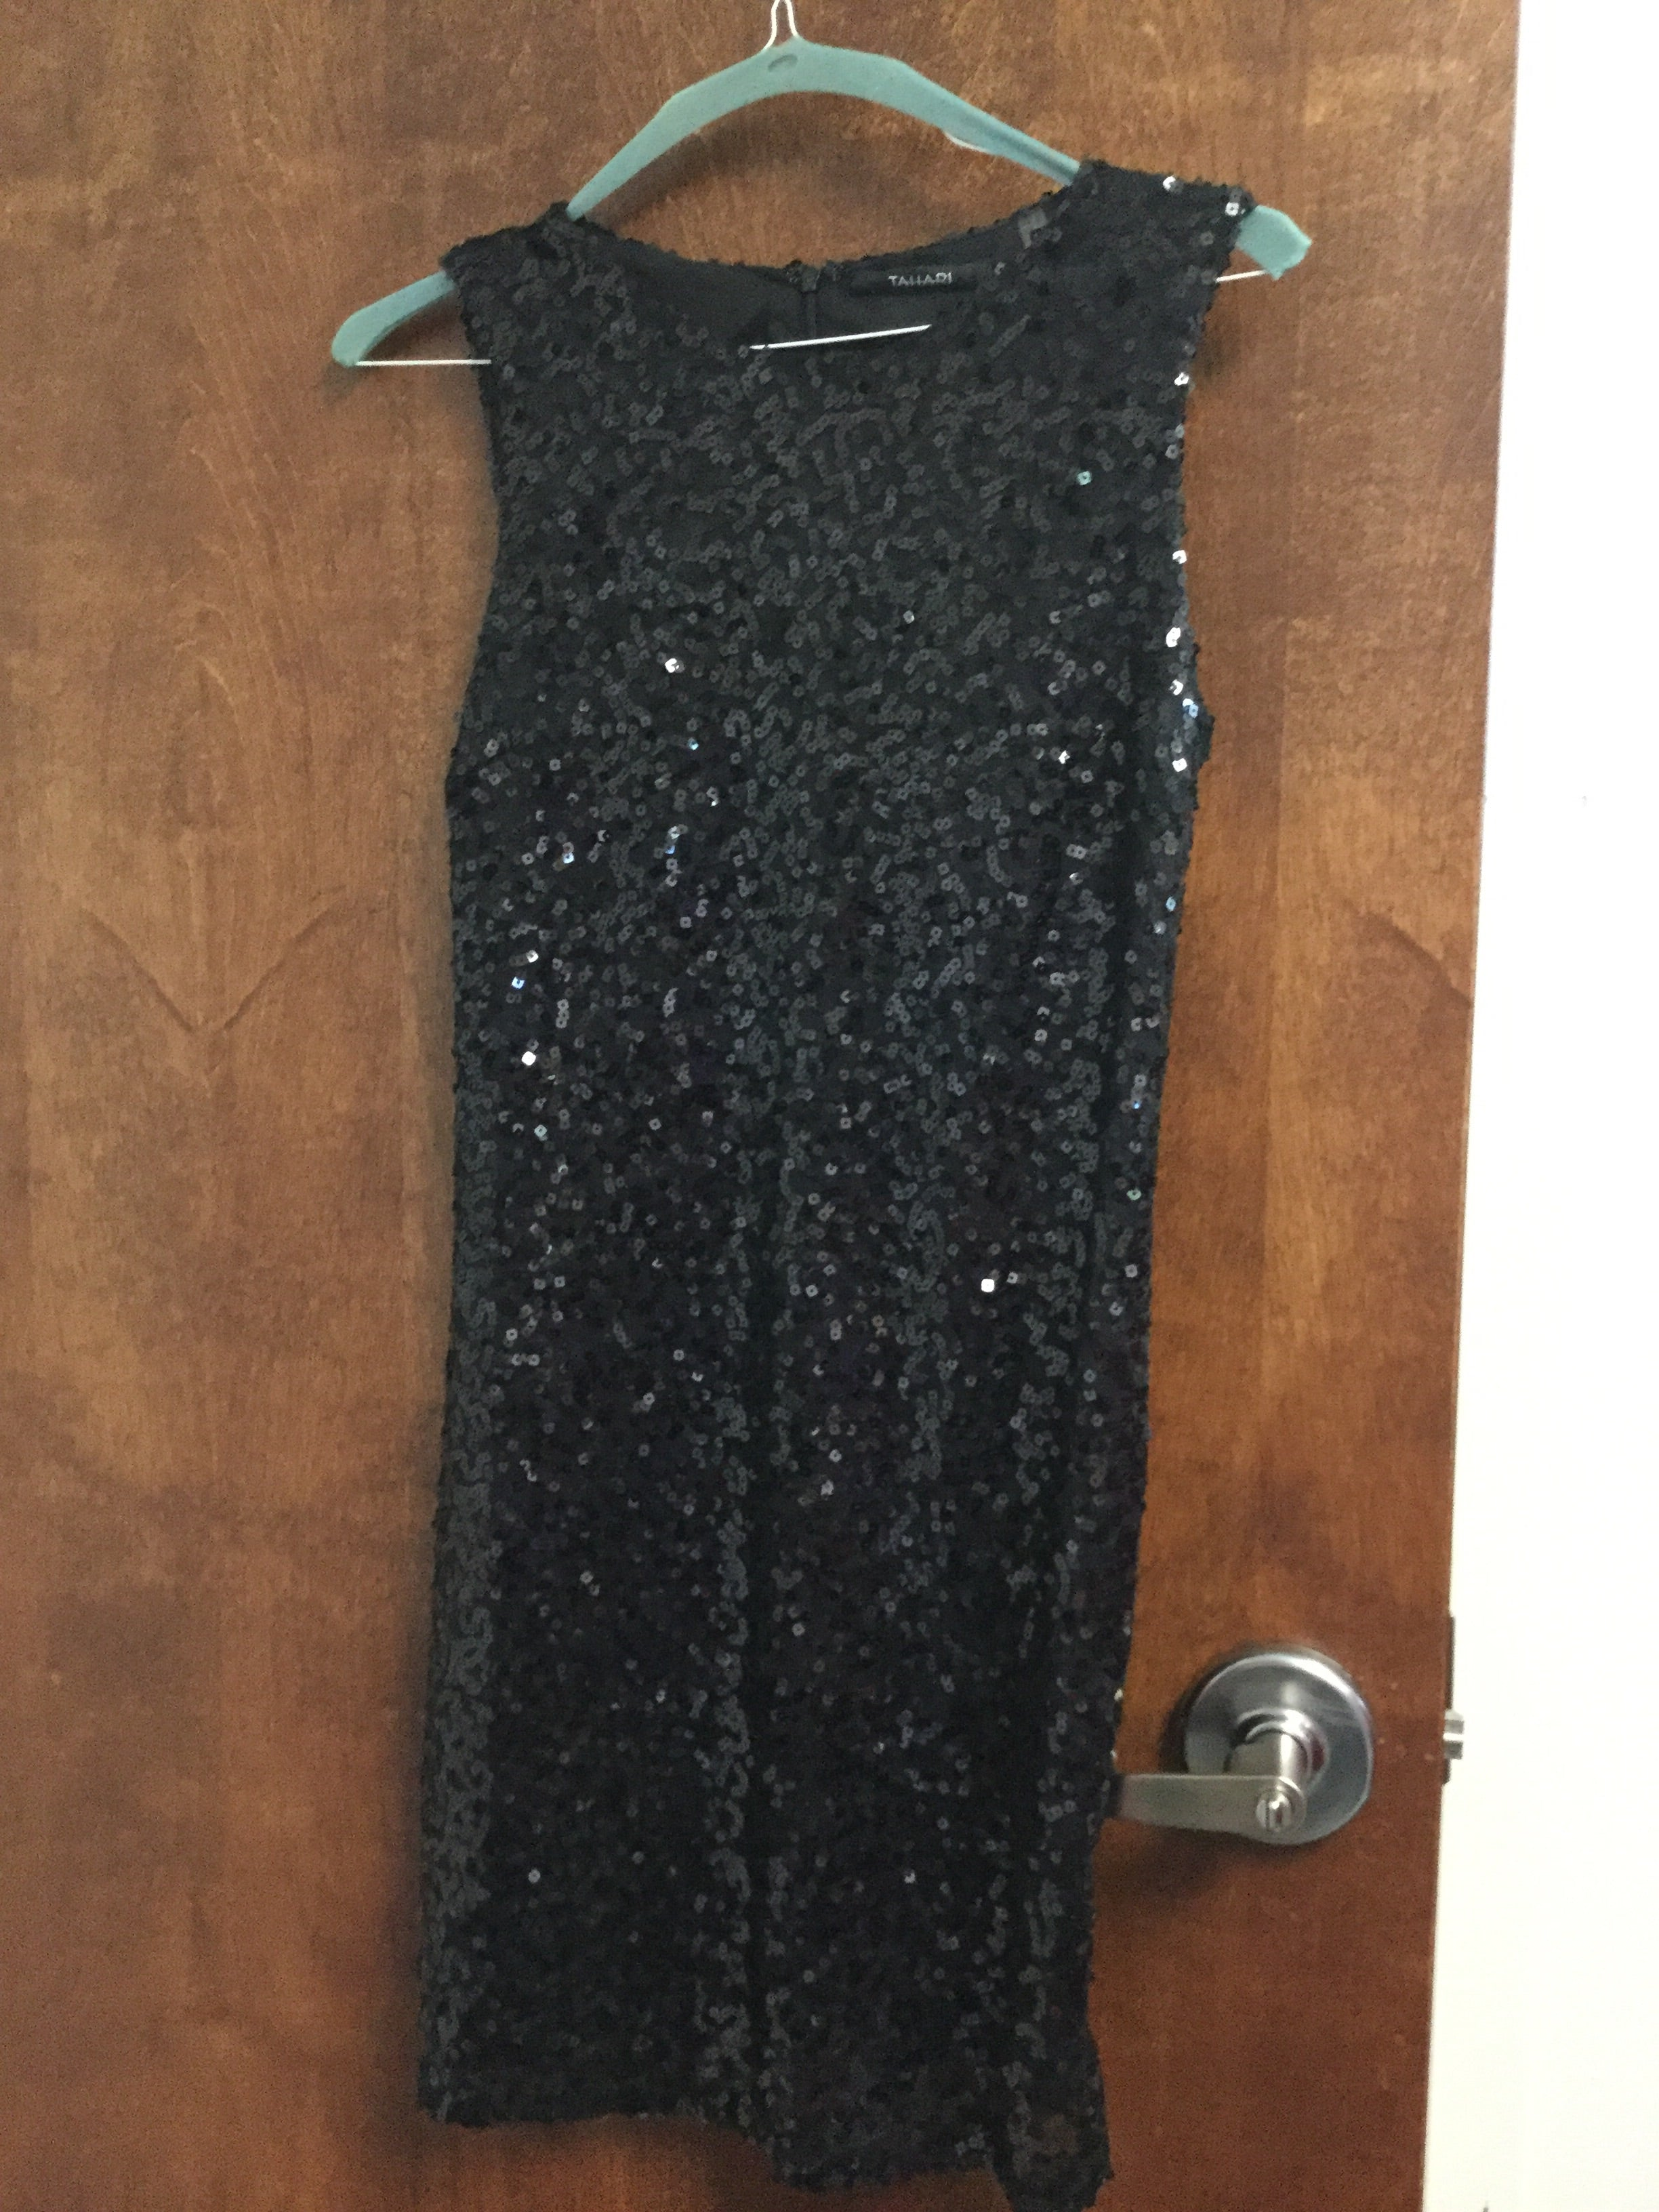 Black sequined dress Tahari 5/22/18 Elise Friedman size 4